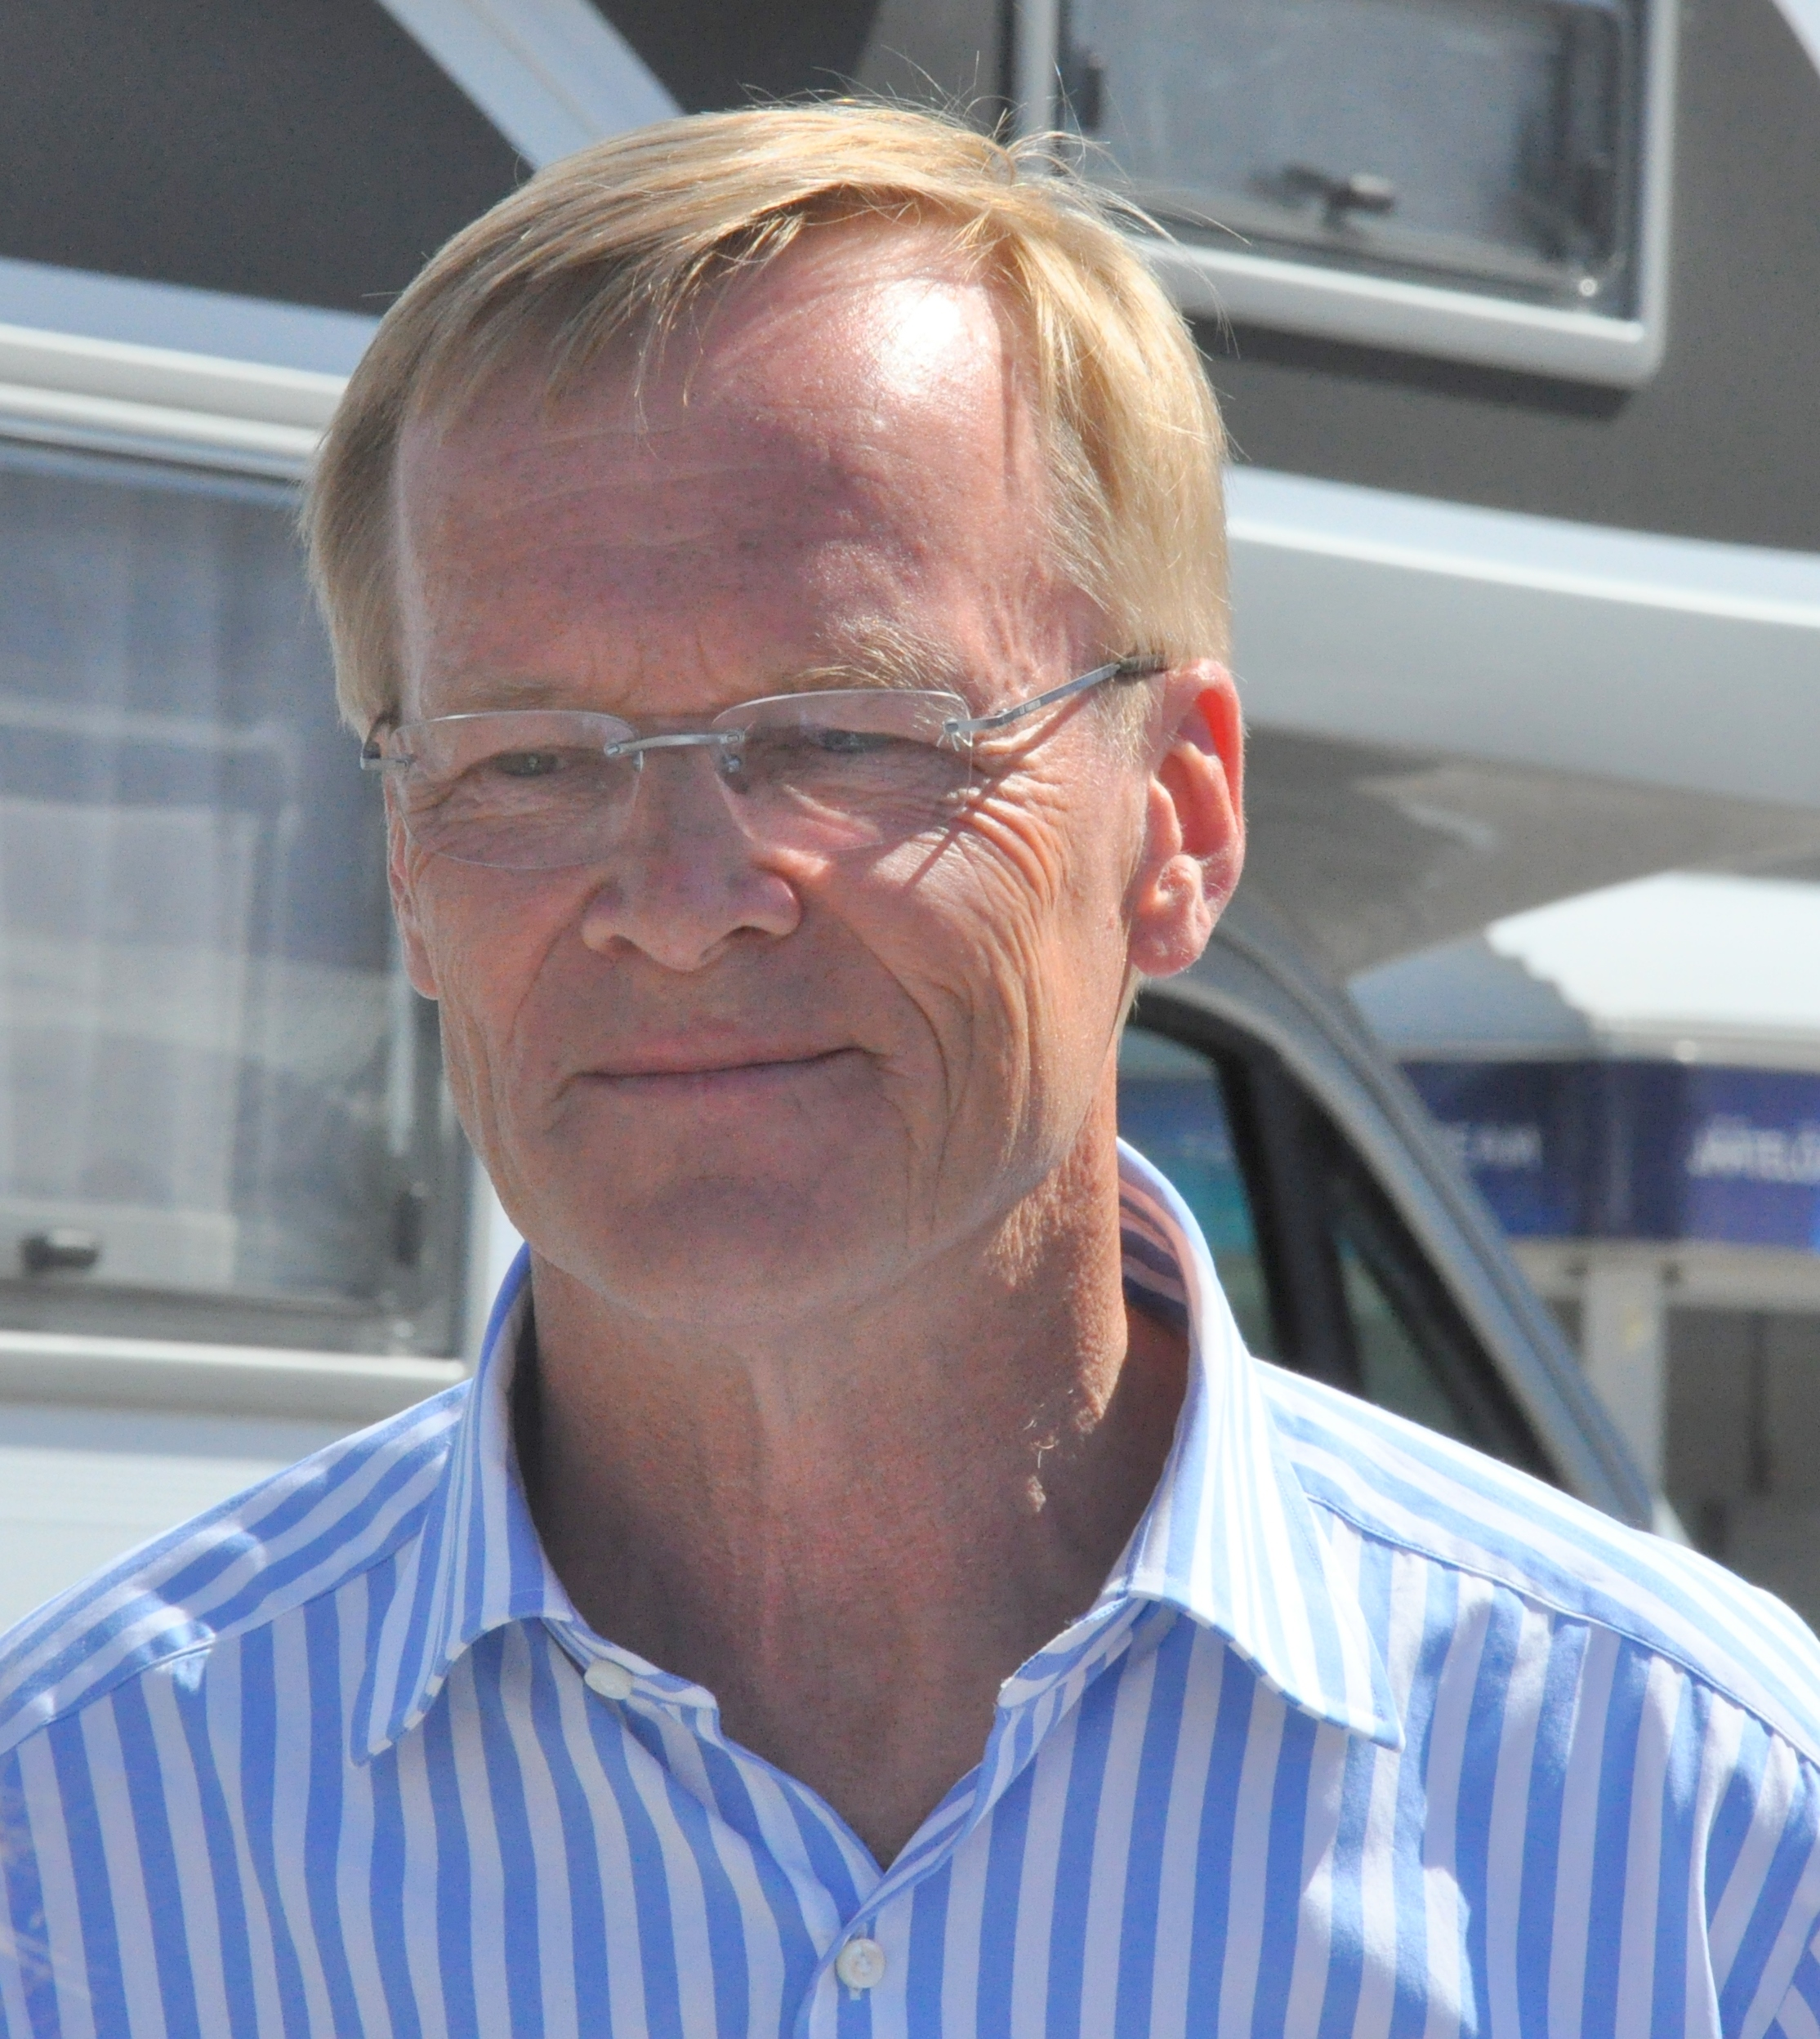 The 66-year old son of father (?) and mother(?) Ari Vatanen in 2018 photo. Ari Vatanen earned a  million dollar salary - leaving the net worth at 30 million in 2018